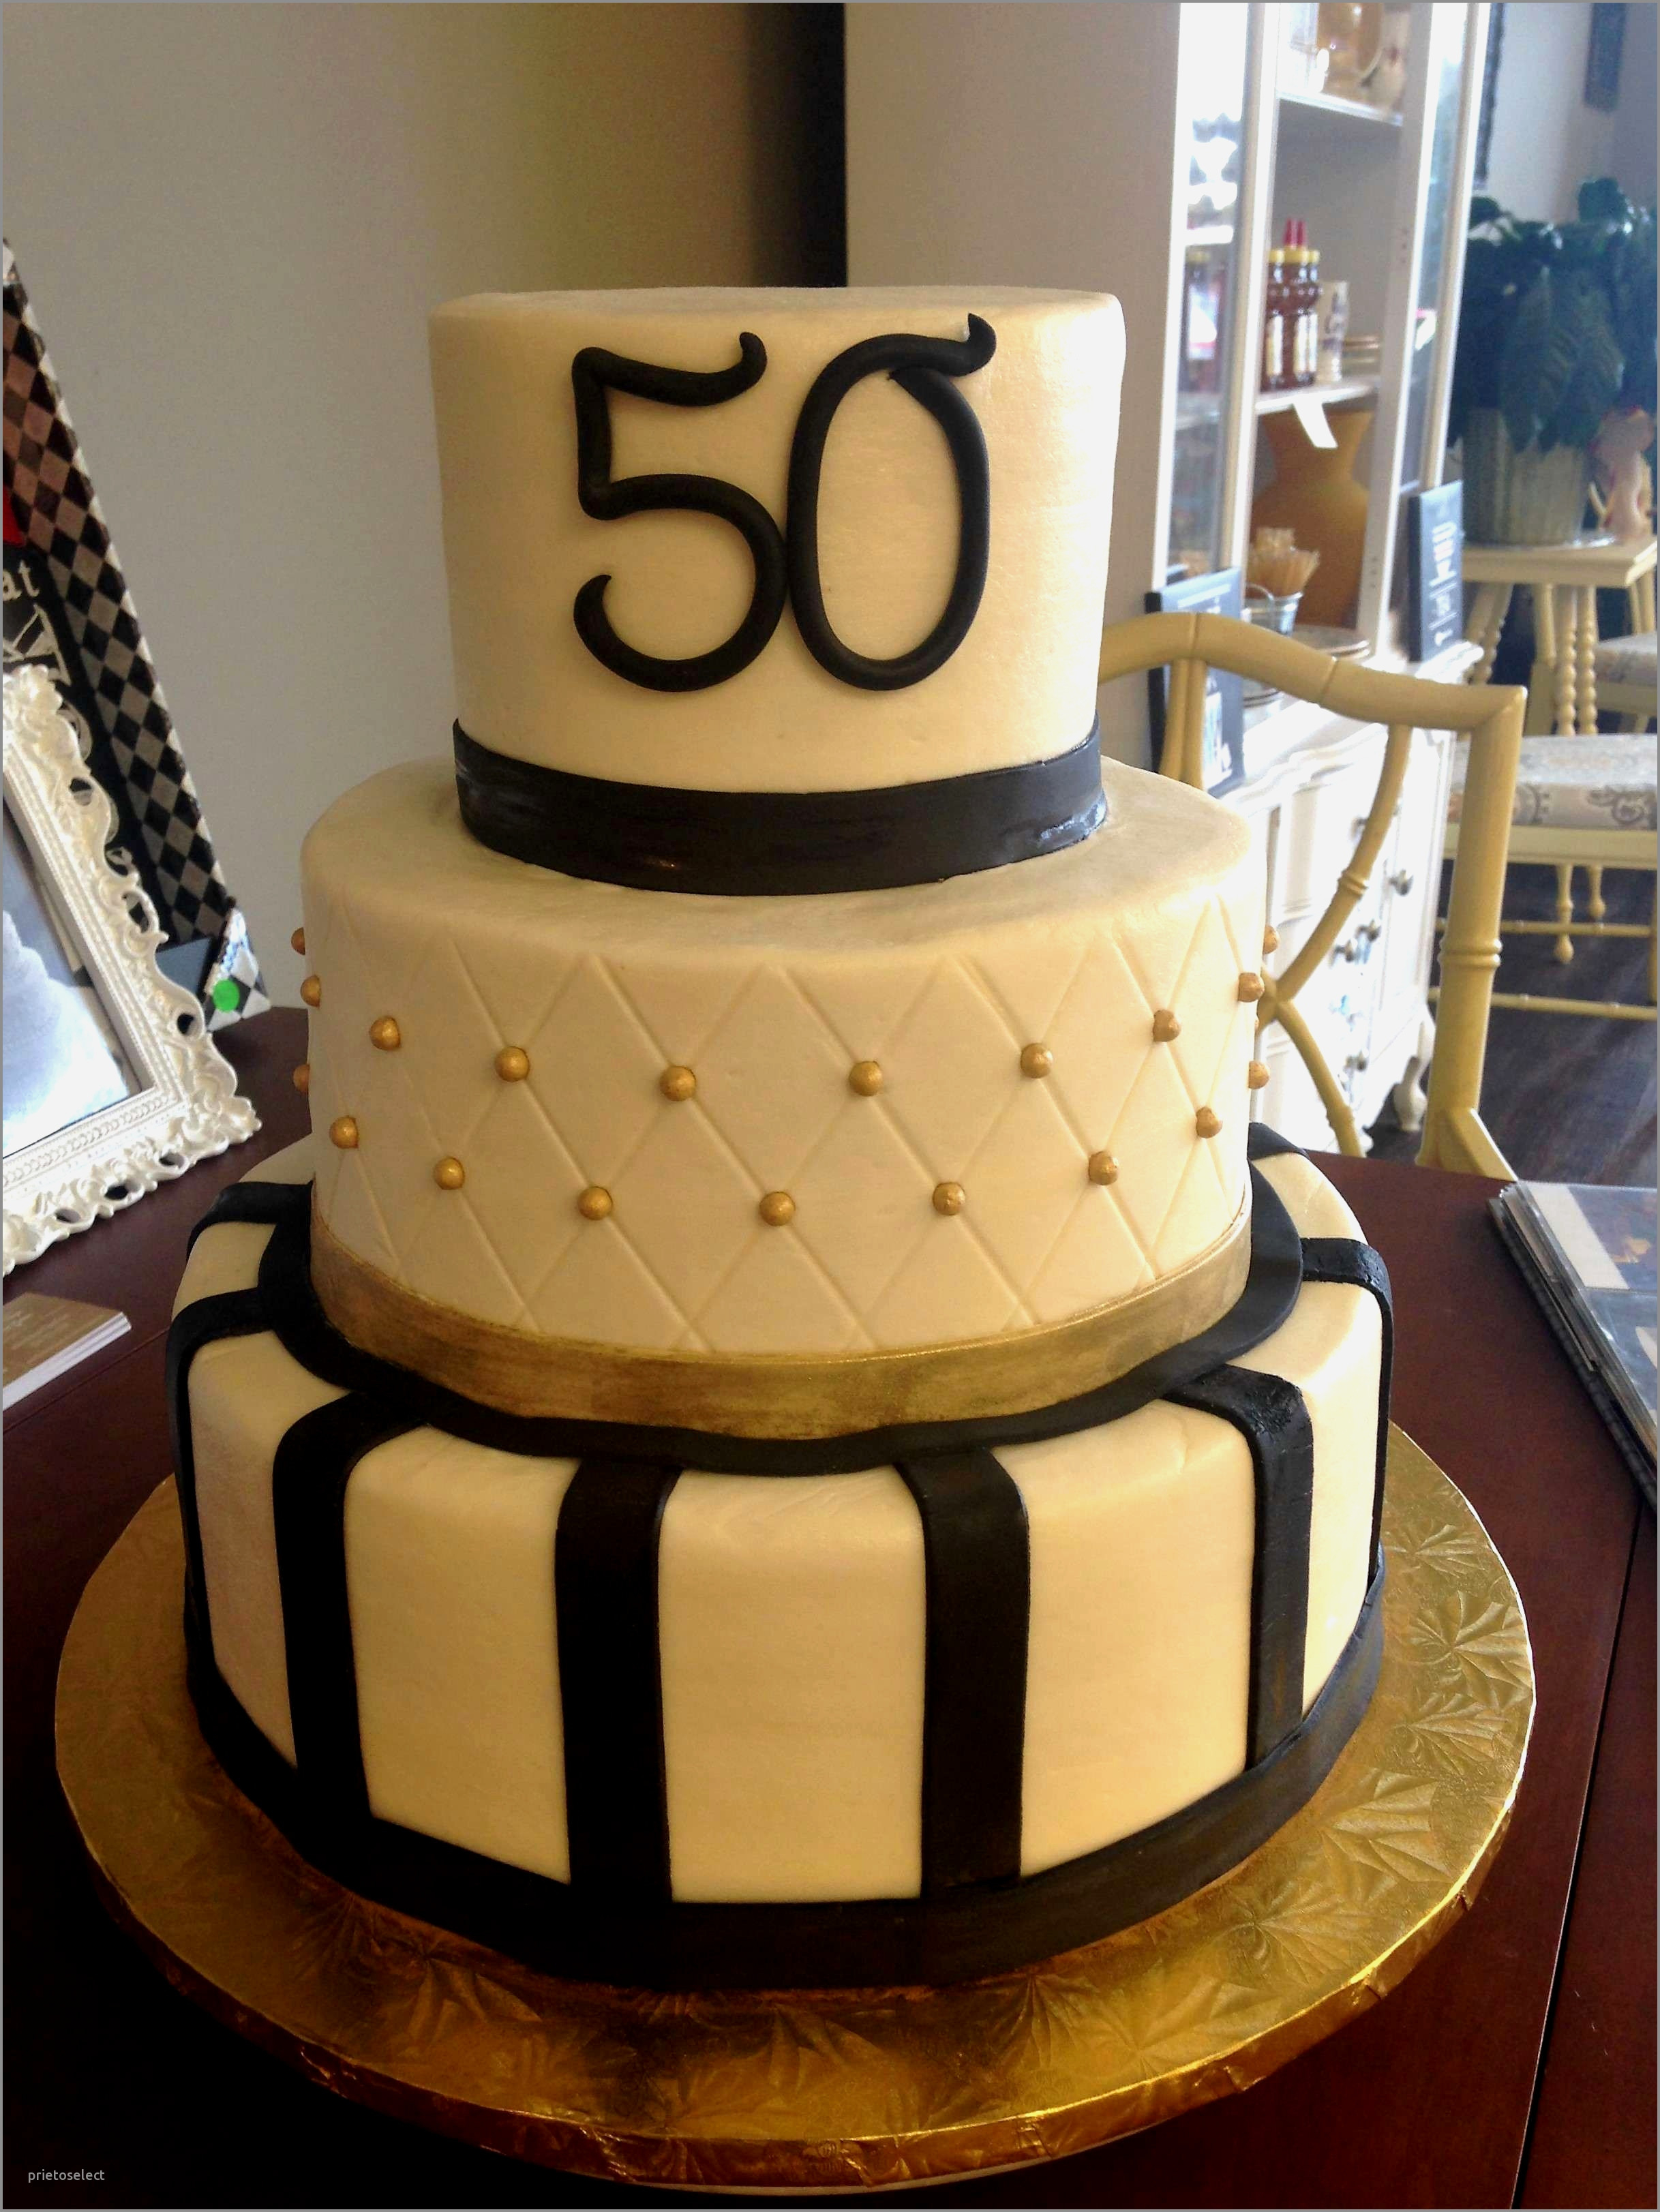 50th Birthday Cake Ideas For Her 50th Birthday Cake Ideas For Him